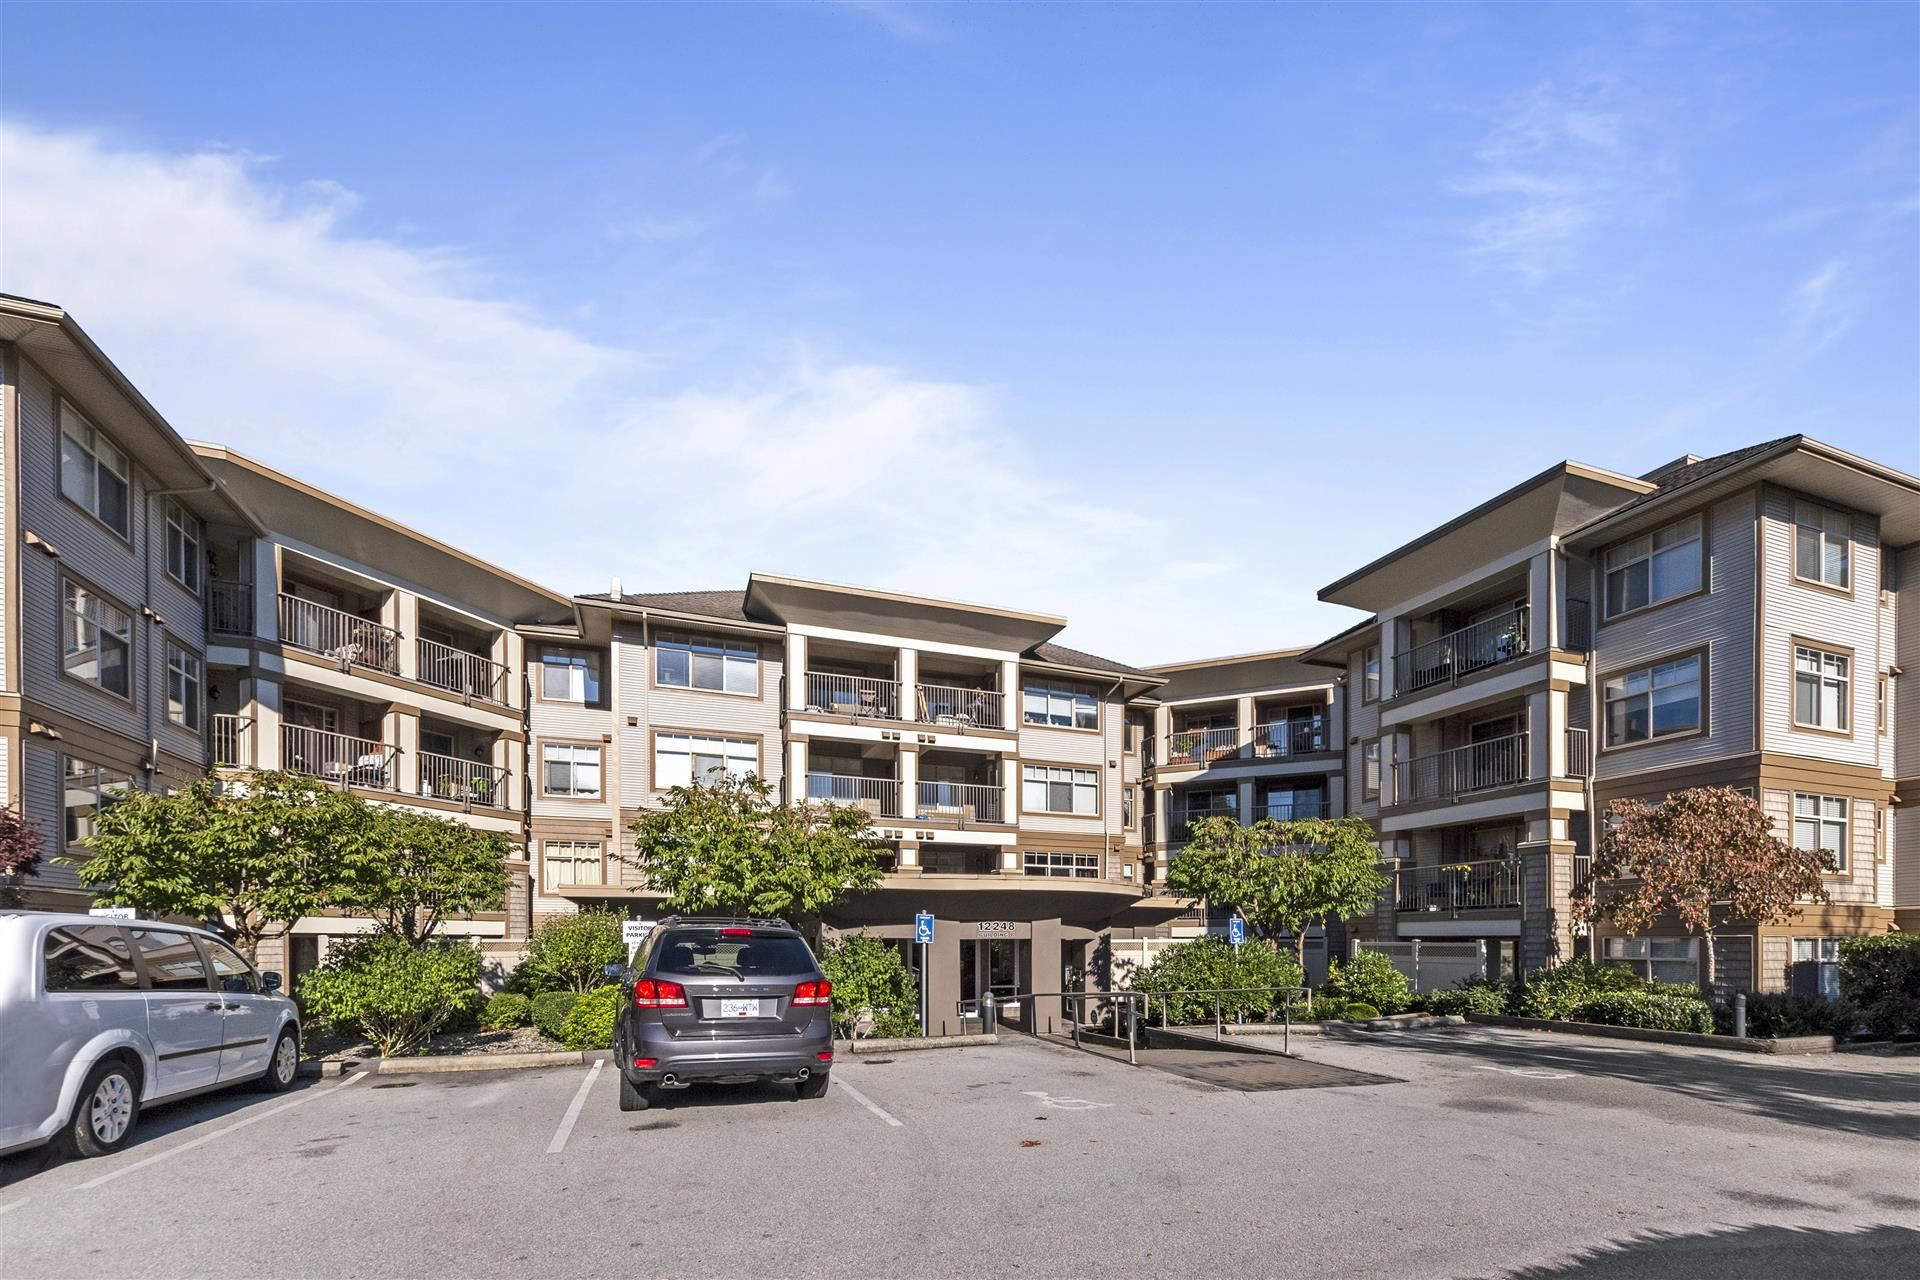 Main Photo: 120-12248 224th Street in Maple Ridge: East Central Condo for sale : MLS®# R2512078